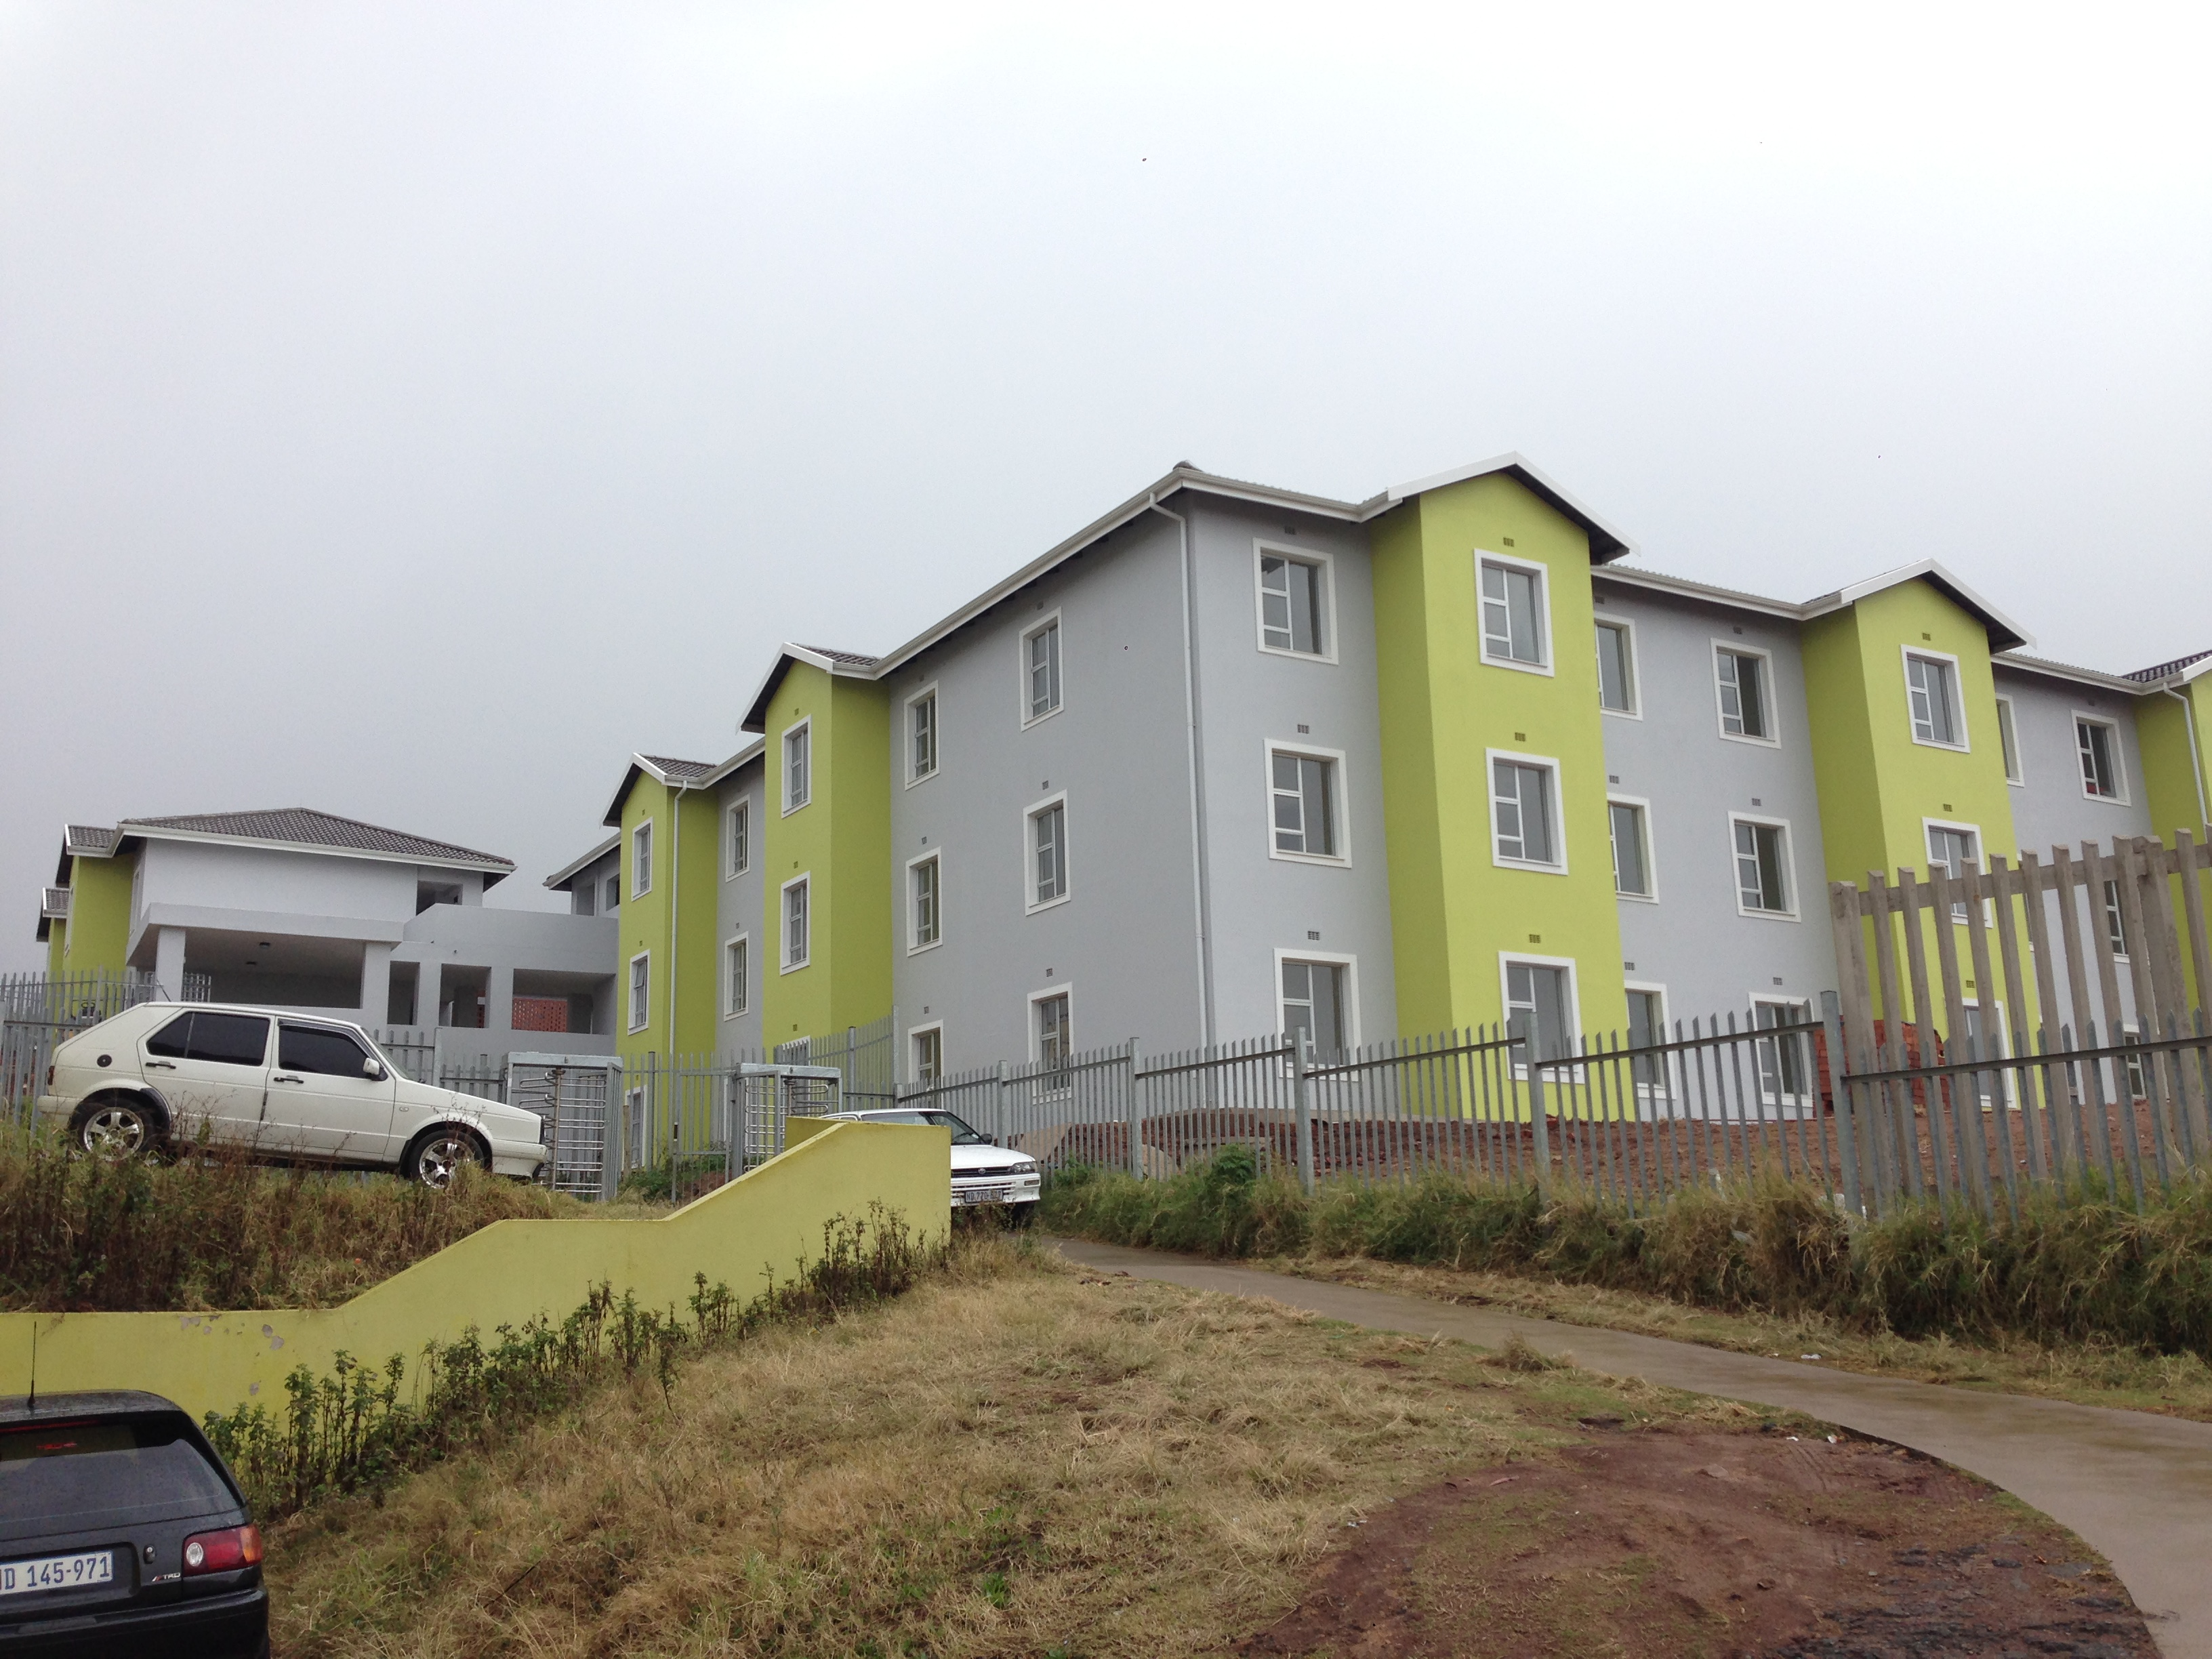 Klaarwater Housing Project